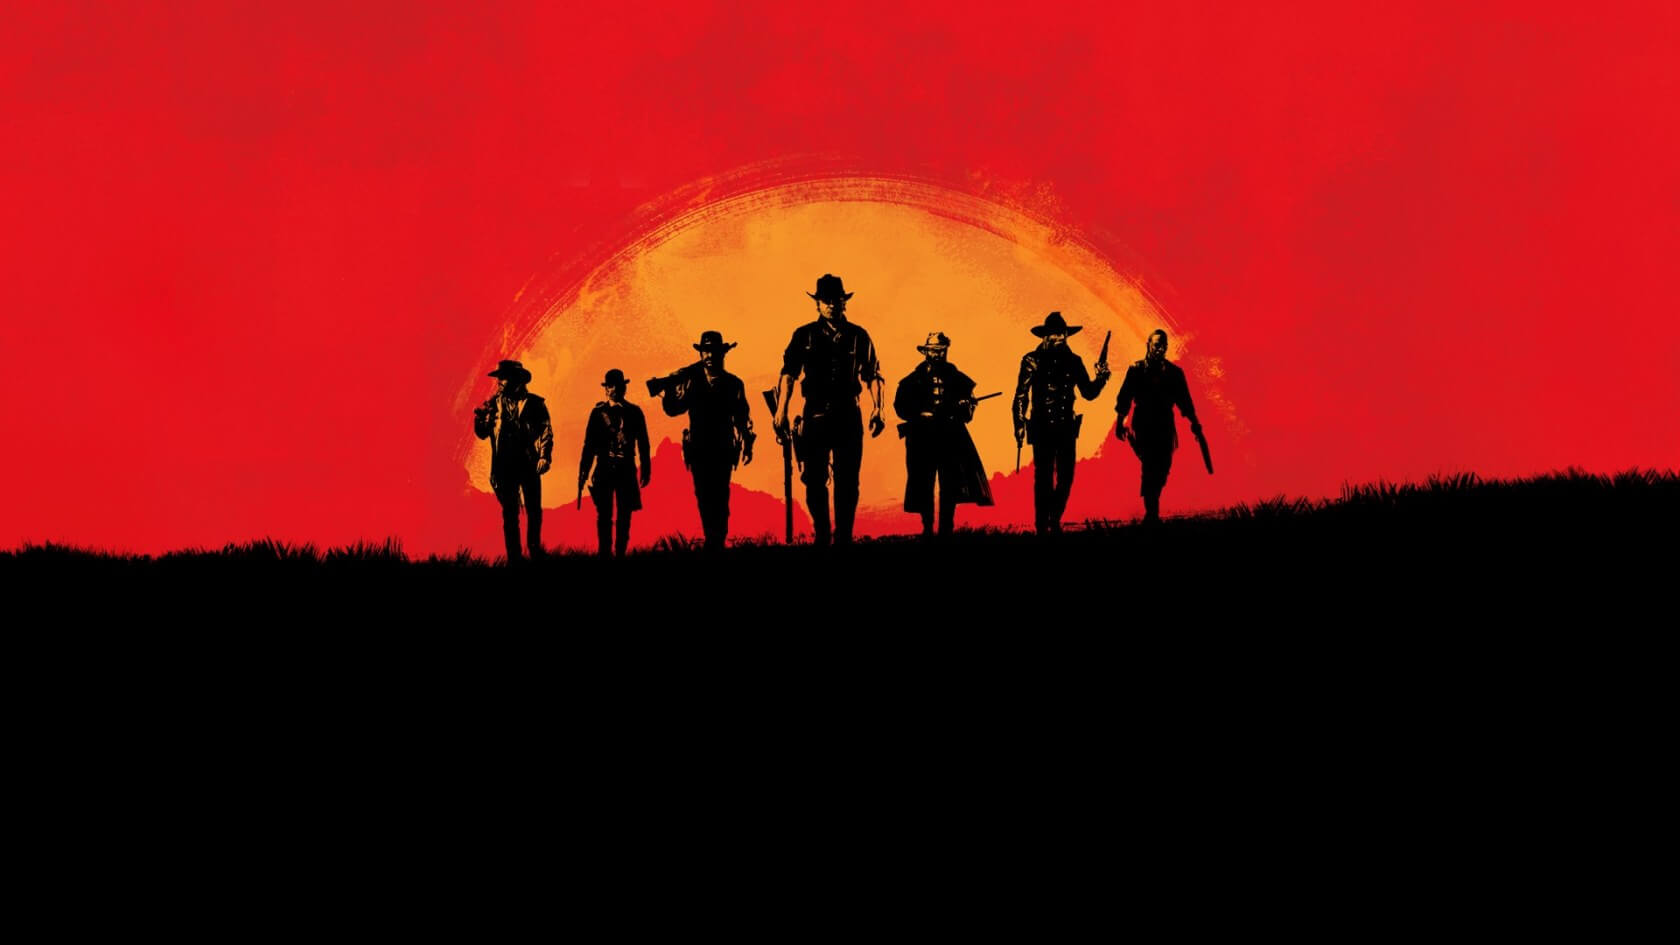 Red Dead Redemption 2 gameplay shows off stunning levels of immersion